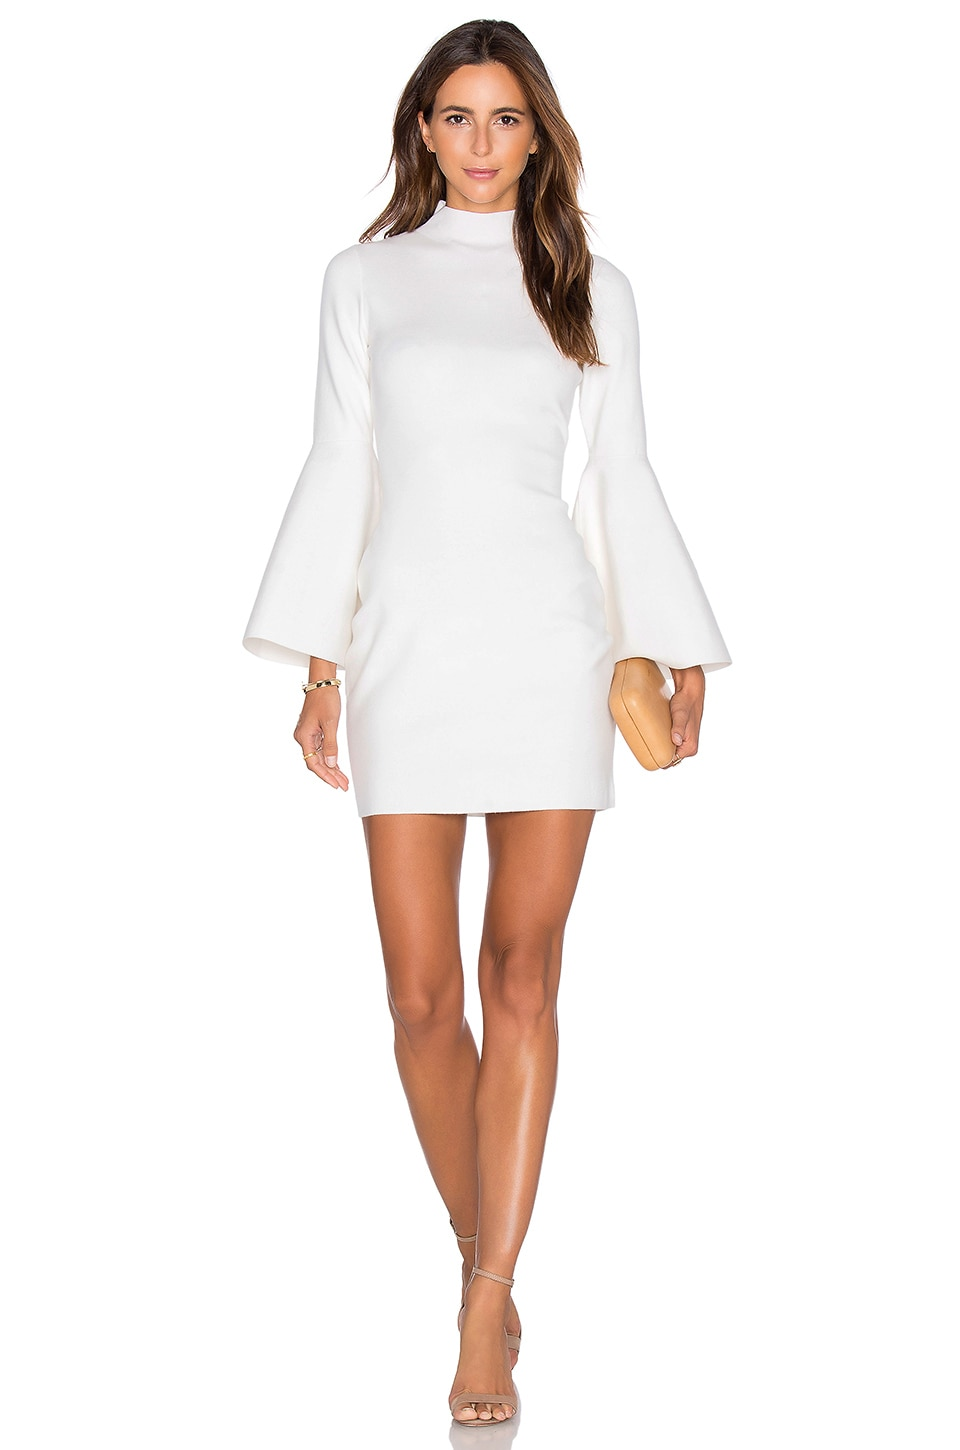 MILLY Swing Sleeve Dress in White | REVOLVE